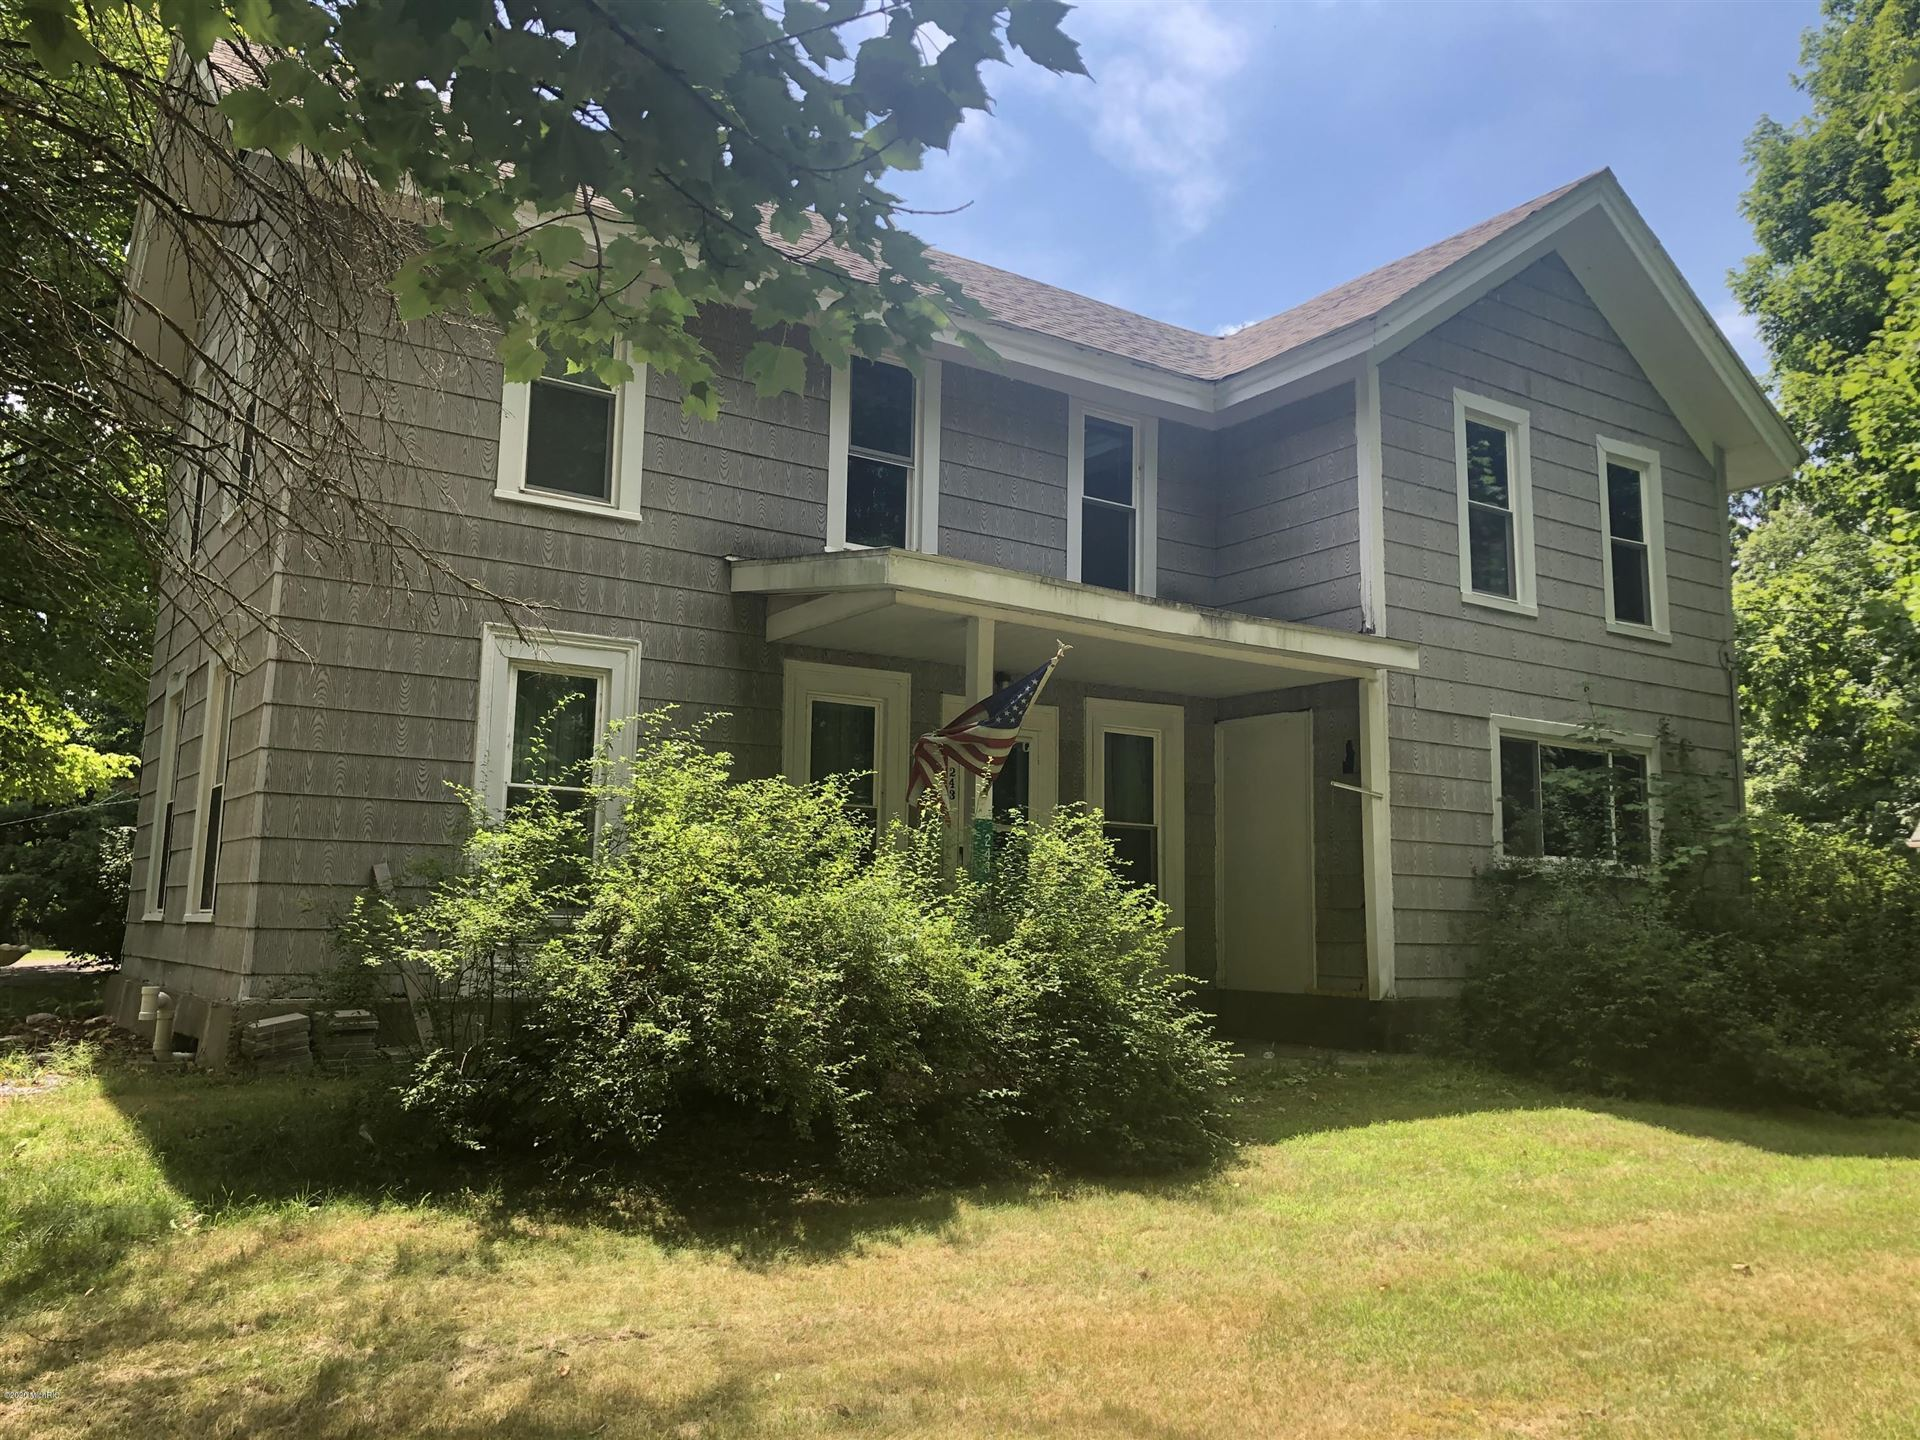 243 Marshall Street, Litchfield, MI 49252 - #: 20027802